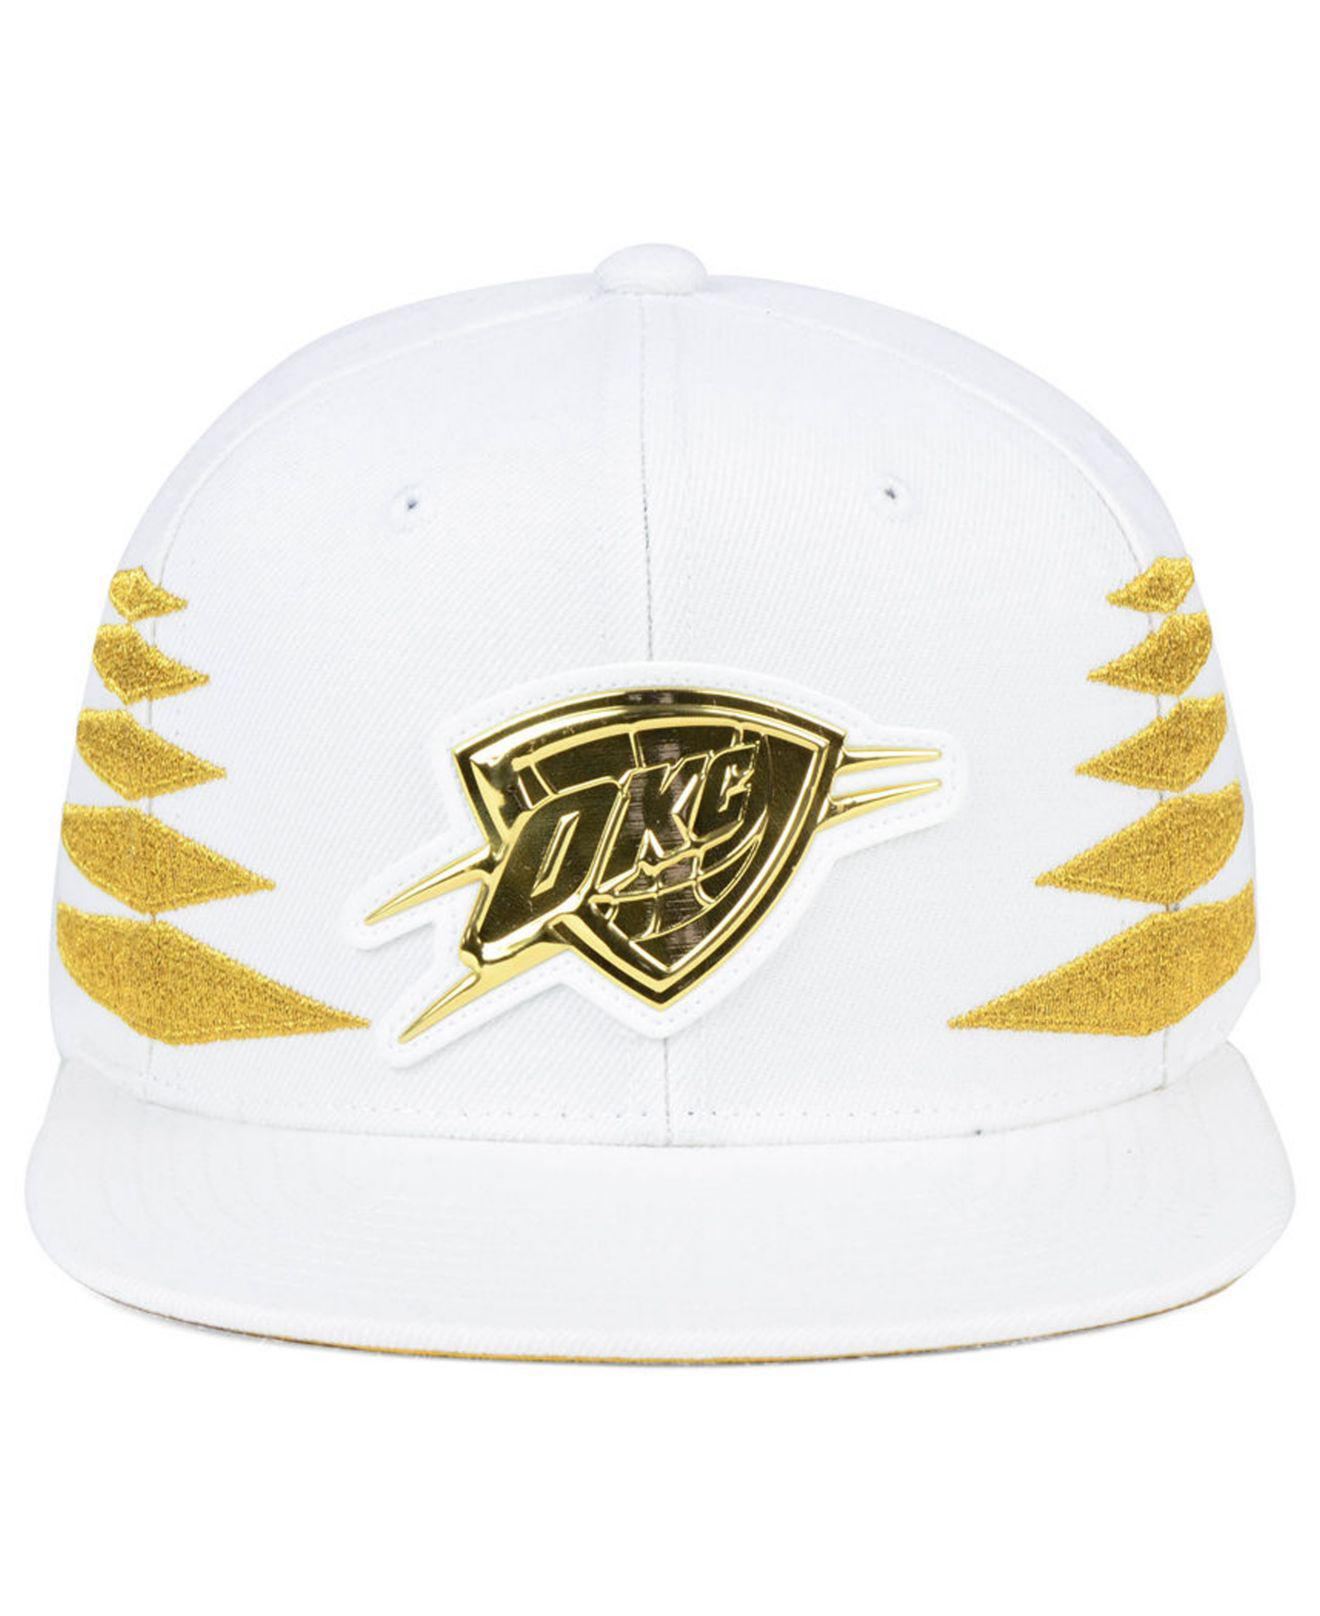 best service 87bd7 c37be ... best price lyst mitchell ness oklahoma city thunder gold diamonds  snapback cap in metallic for men